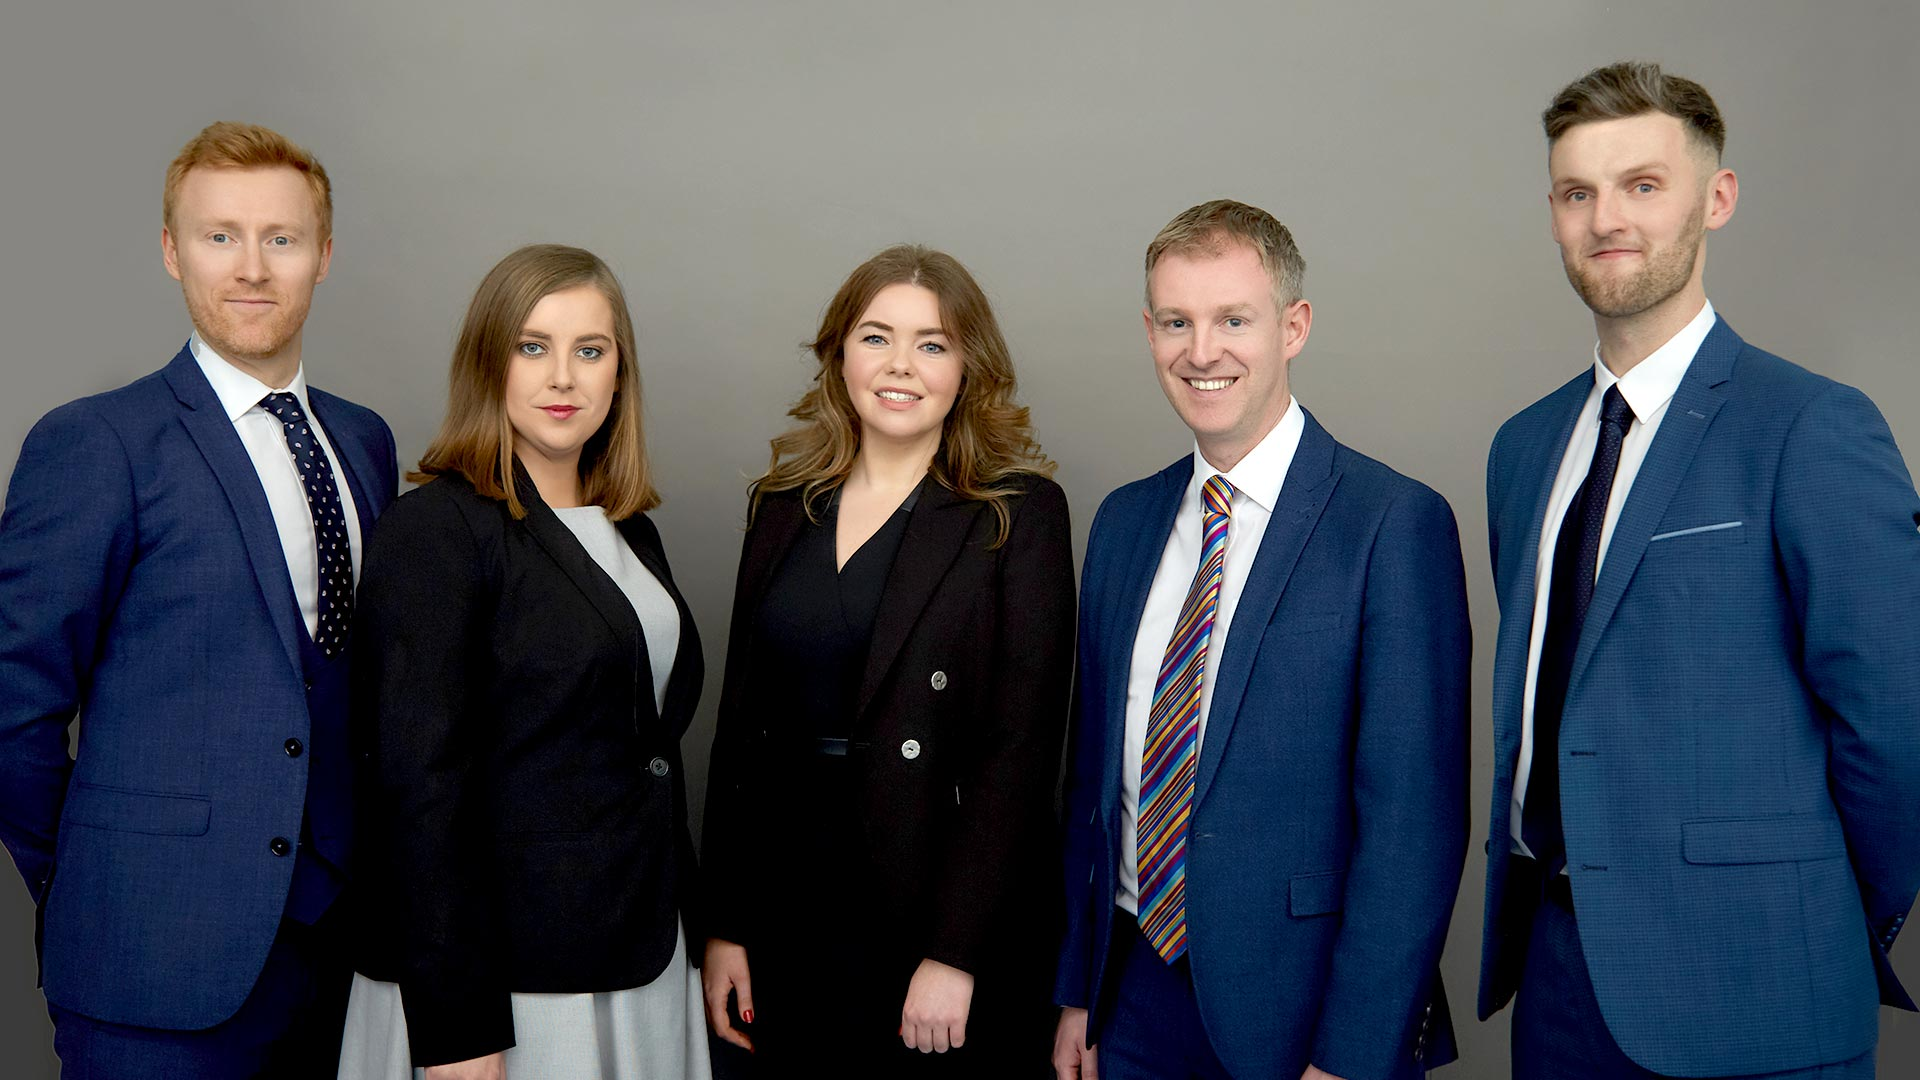 KOD Lyons Child and Family Law team